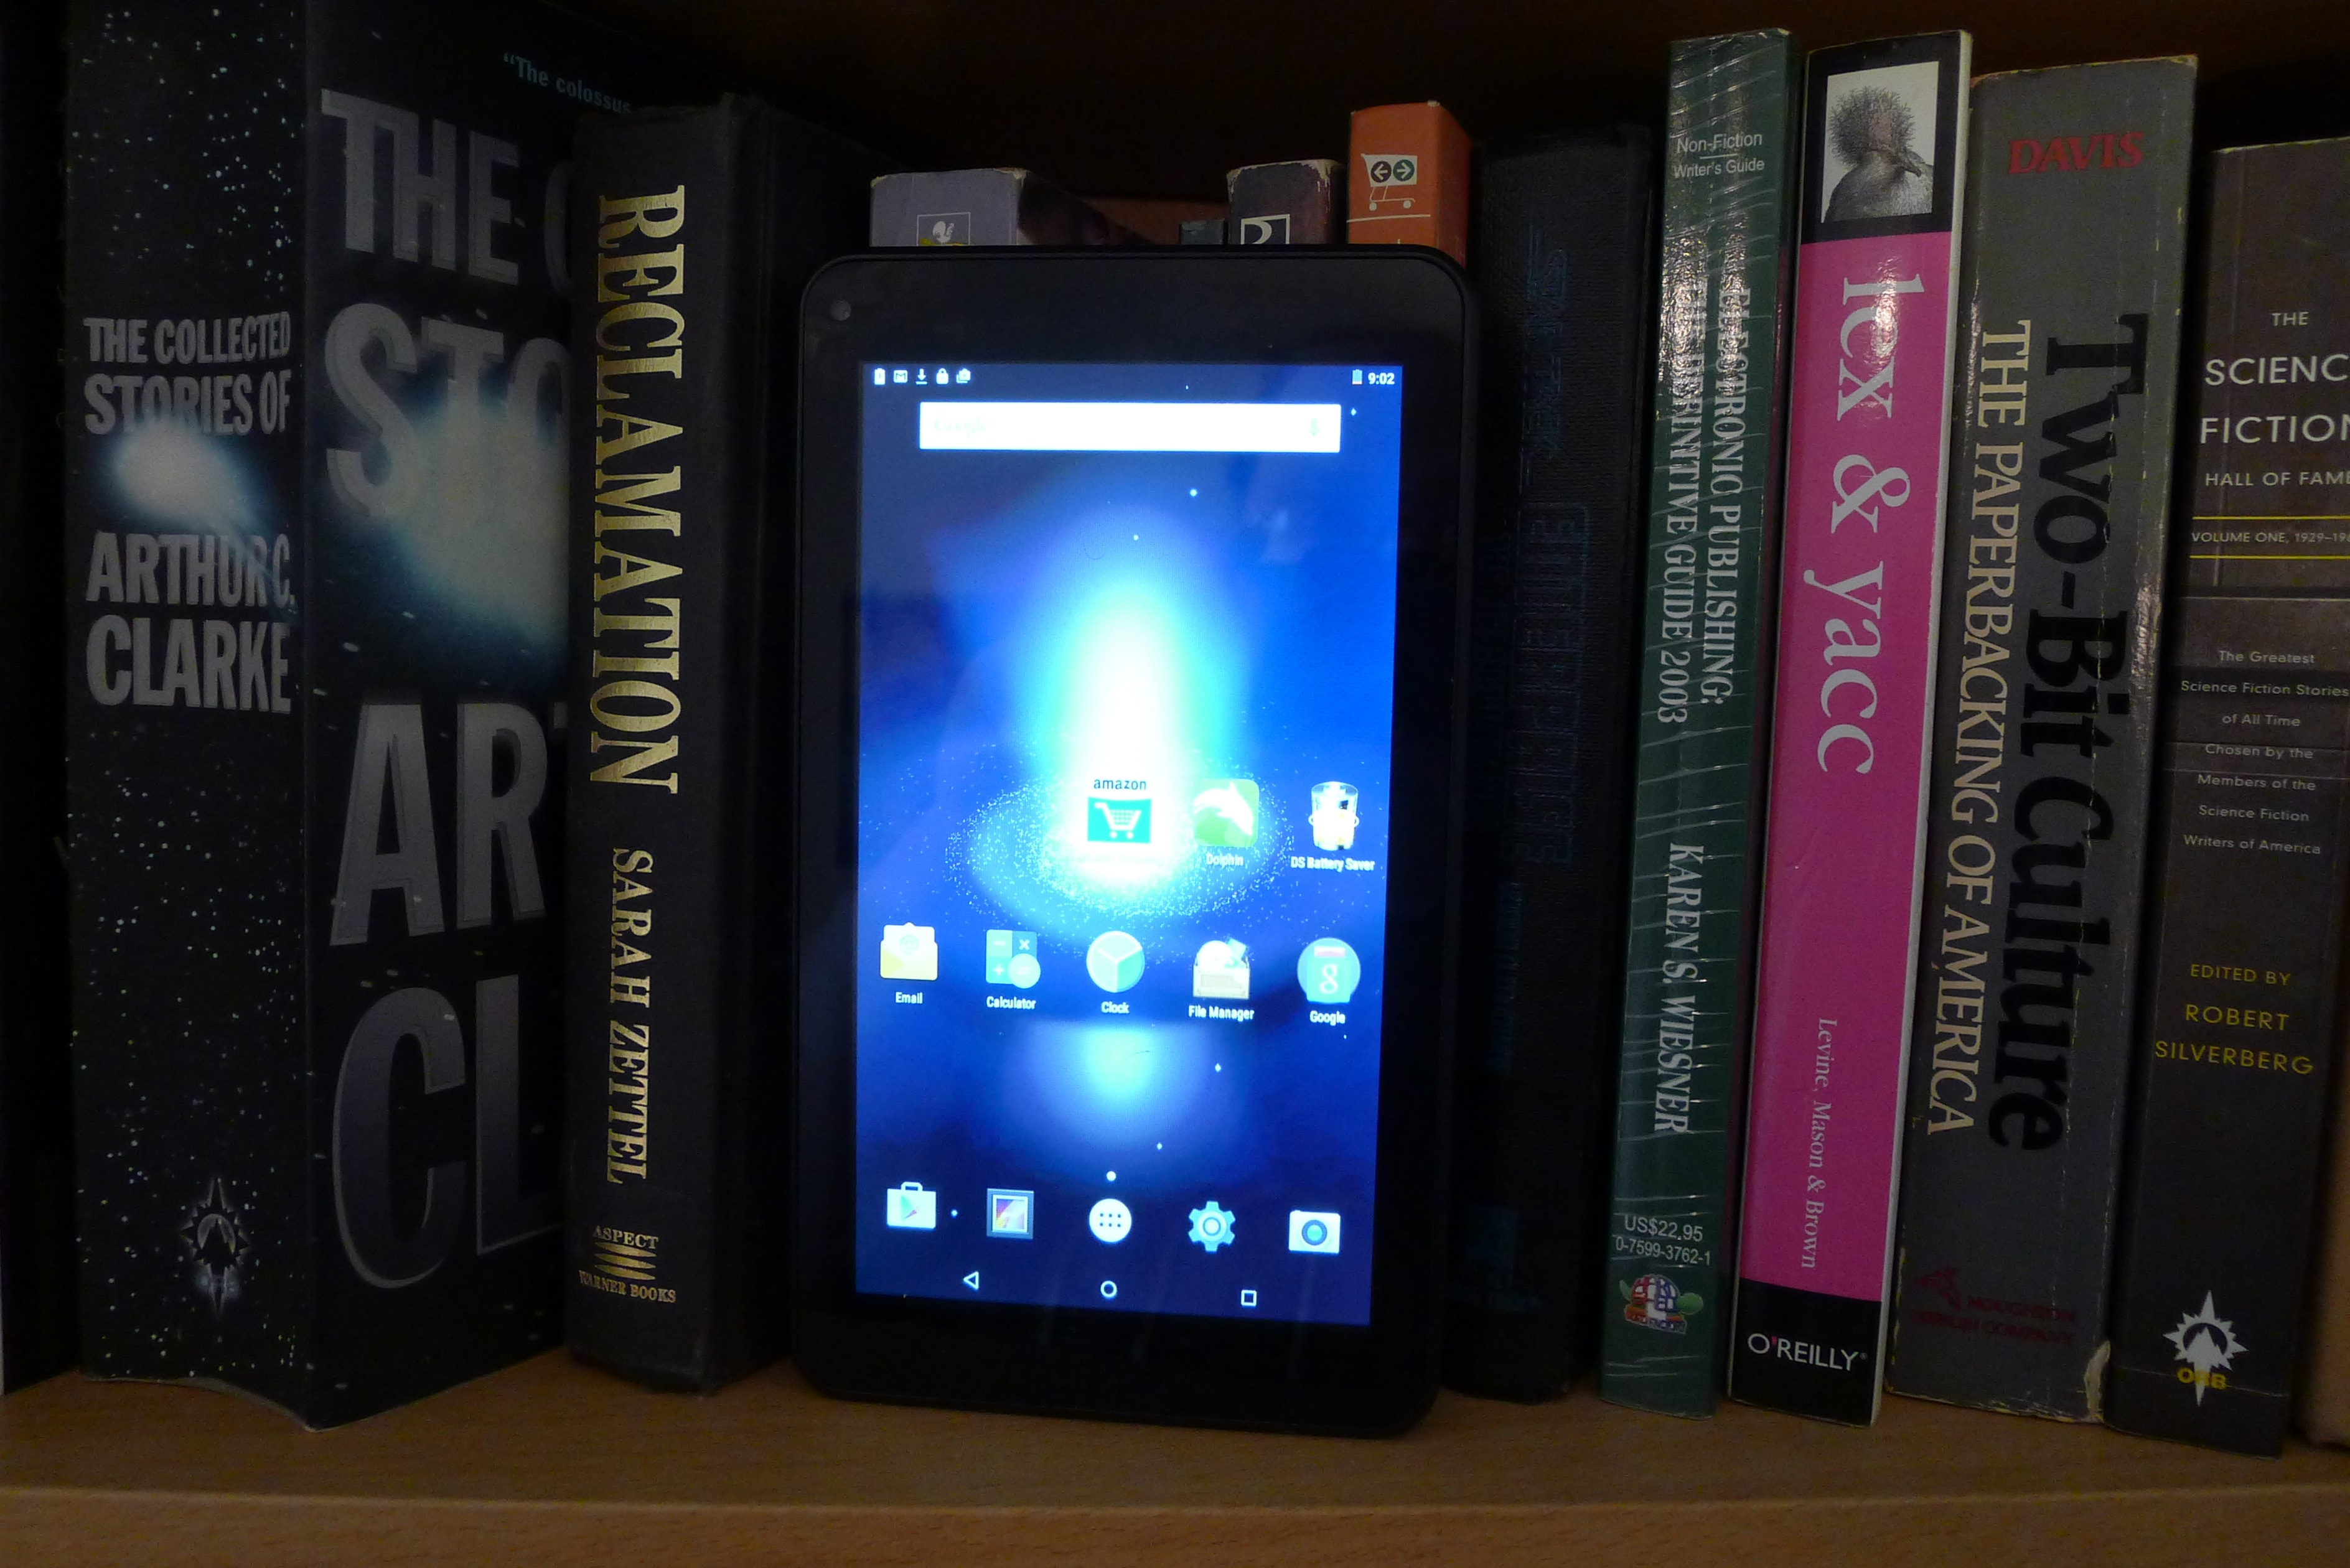 Review: Digiland DL718M Android Tablet Gives the Amazon Fire